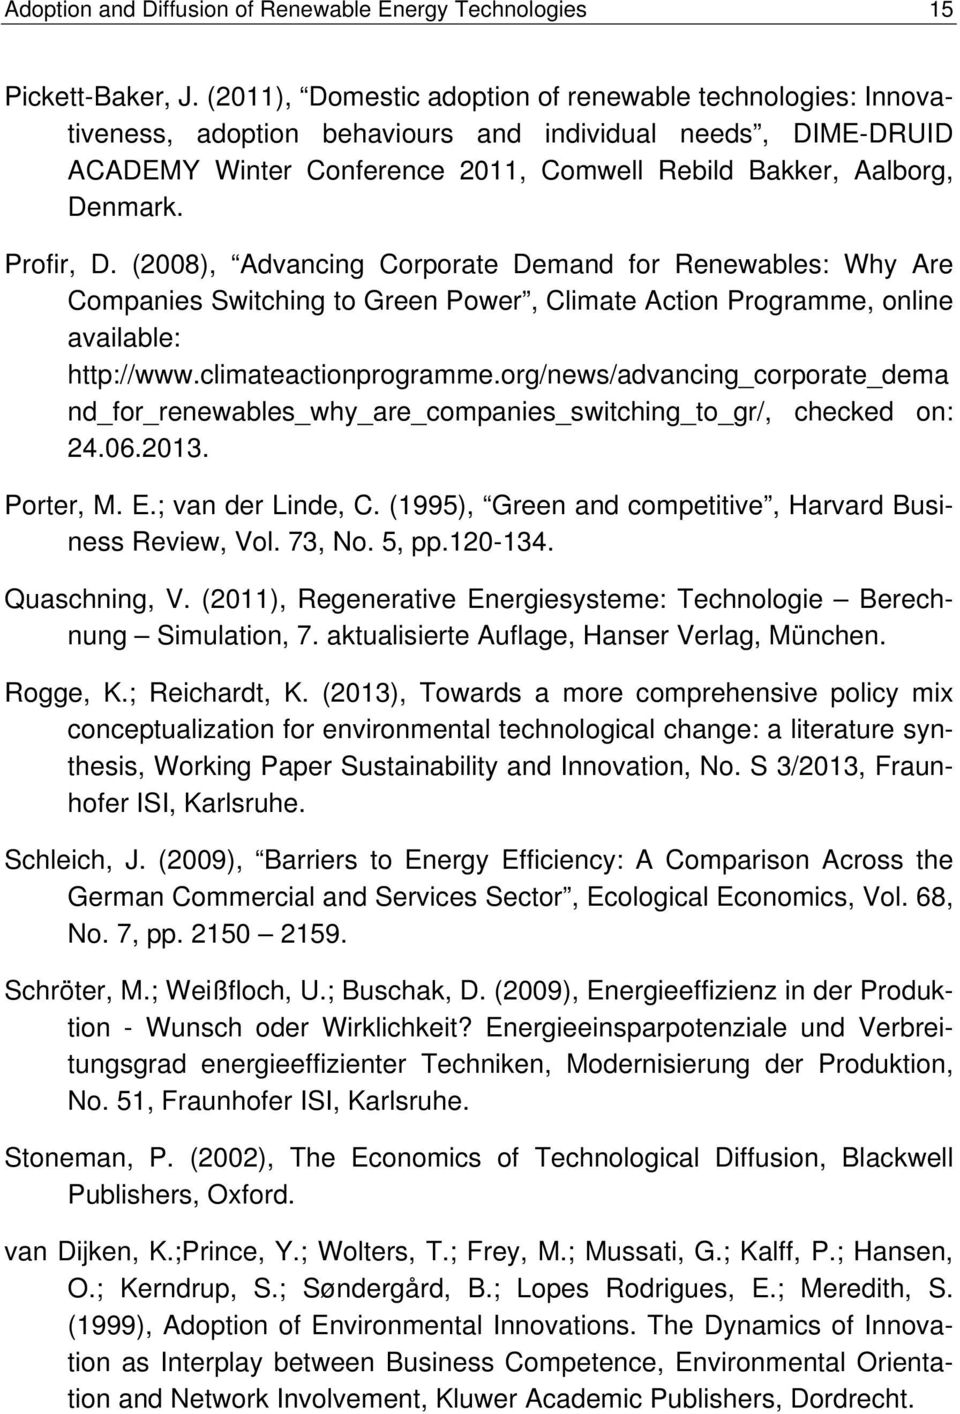 Profir, D. (2008), Advancing Corporate Demand for Renewables: Why Are Companies Switching to Green Power, Climate Action Programme, online available: http://www.climateactionprogramme.